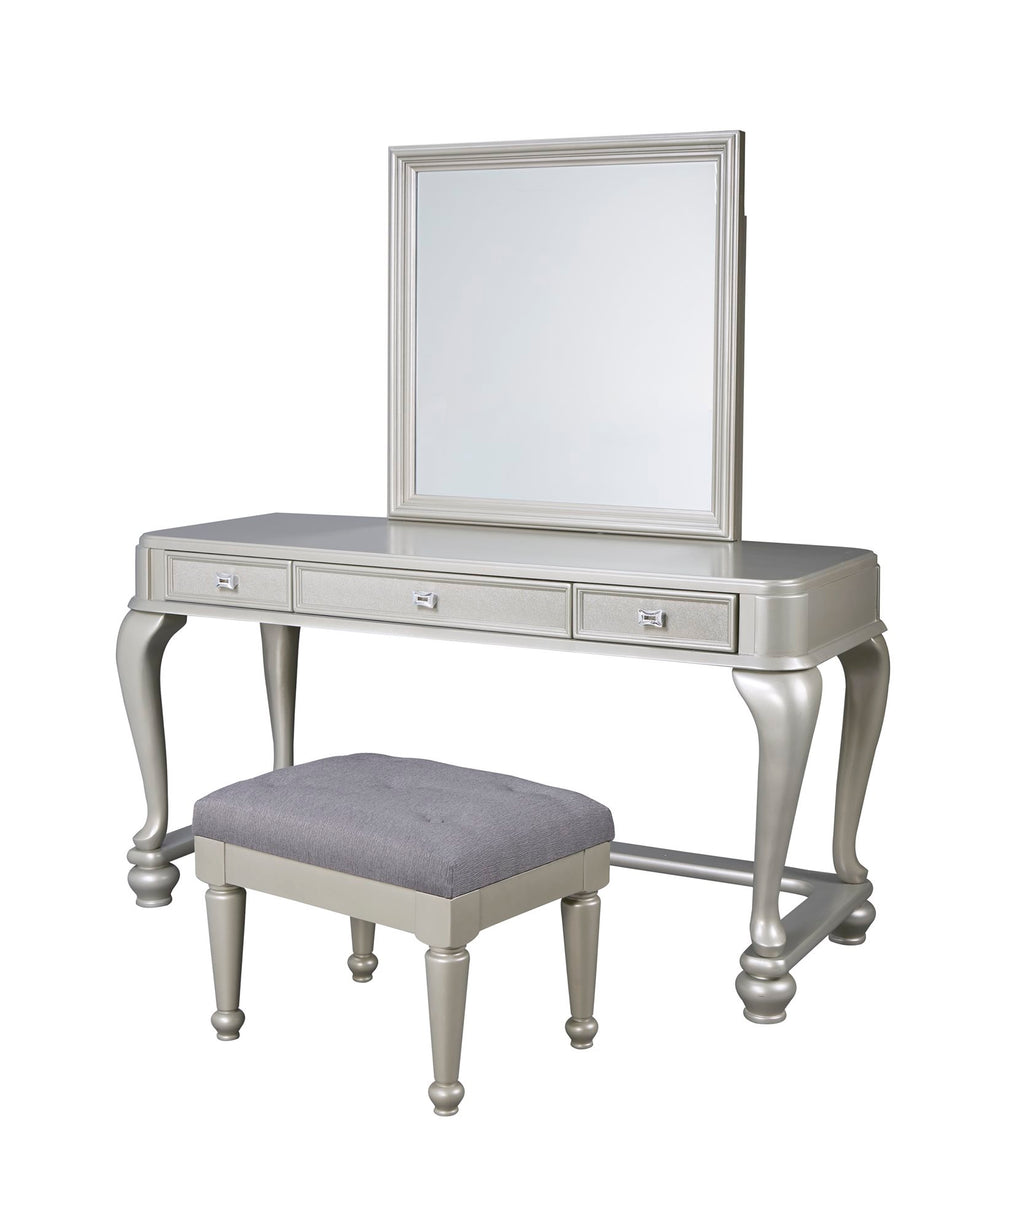 Ashley Coralayne 3 Piece Vanity Vanity Mirror Stool in Silver - The Furniture Space.